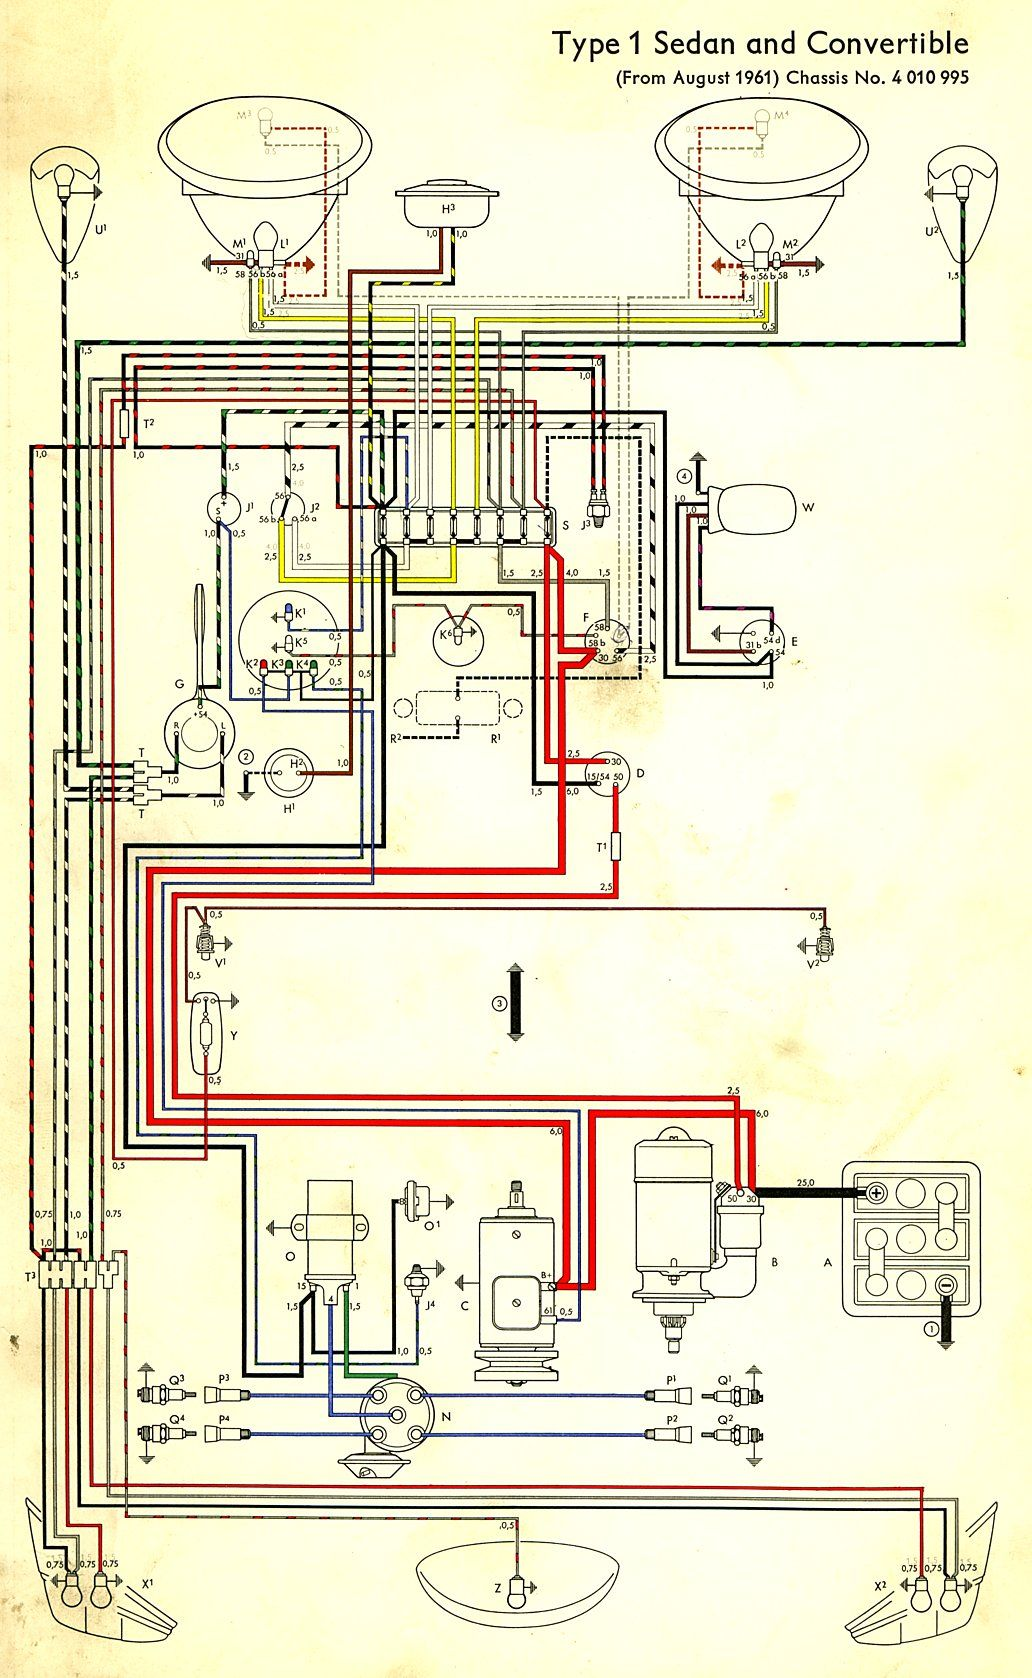 wiring diagram in color 1964 vw bug beetle convertible the samba rh pinterest com